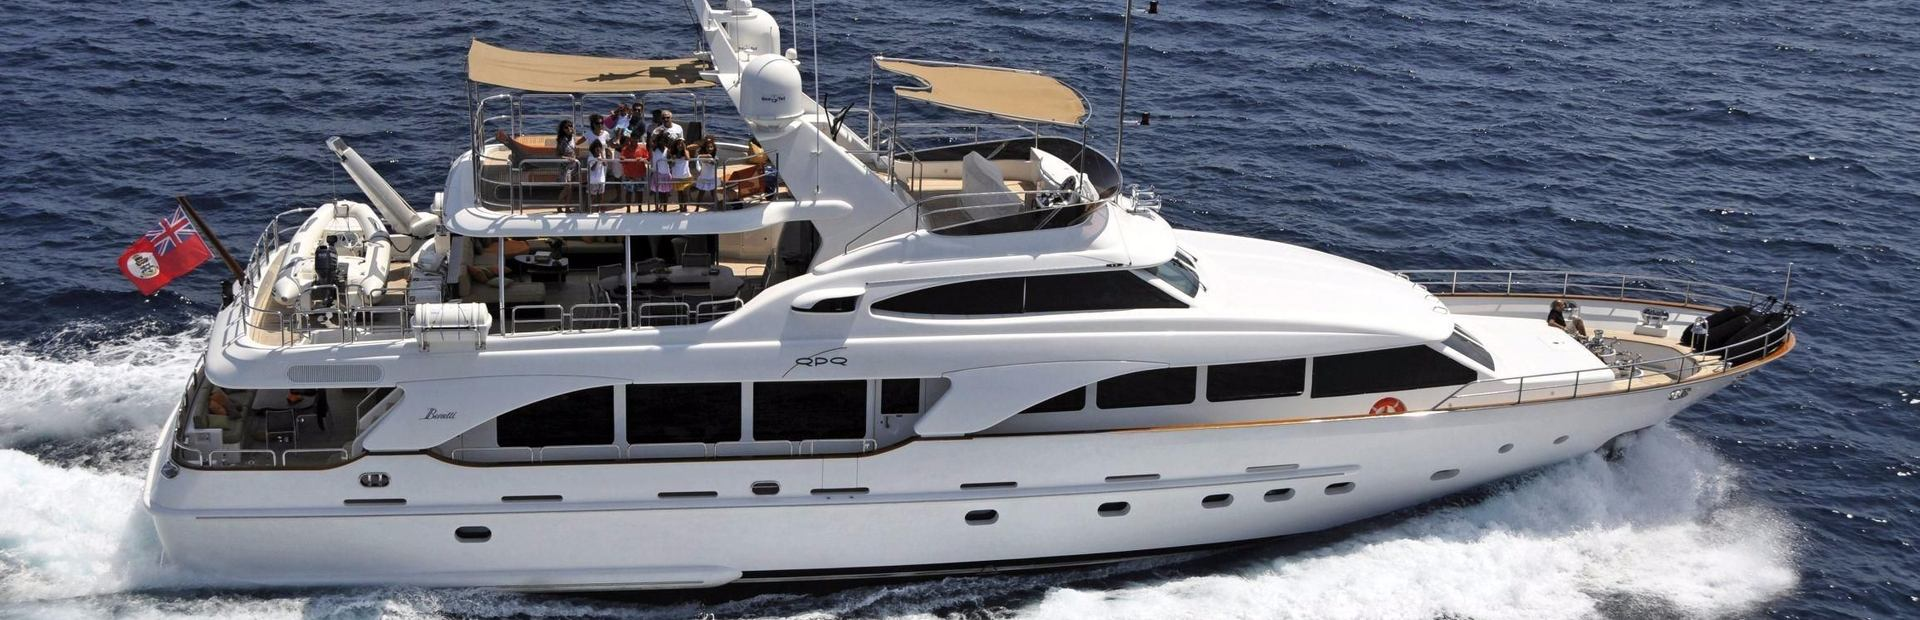 Benetti Tradition 100' Yacht Charter